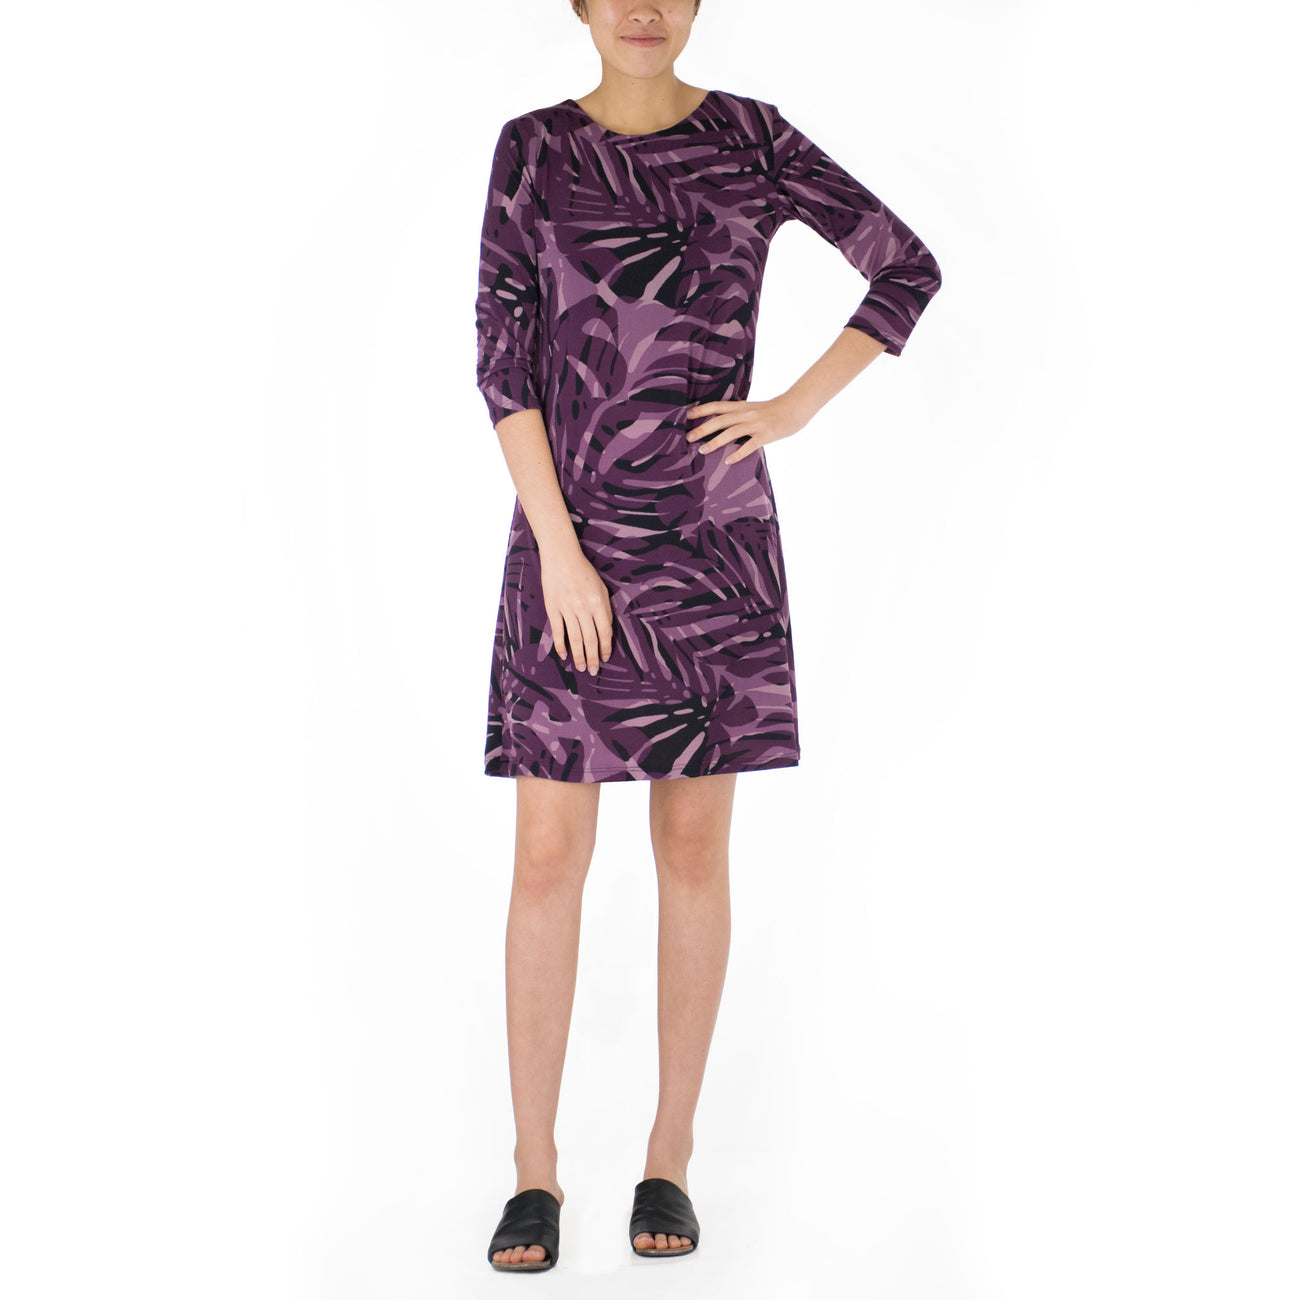 MAIYA SHORT 3/4 SLEEVE SHEATH DRESS